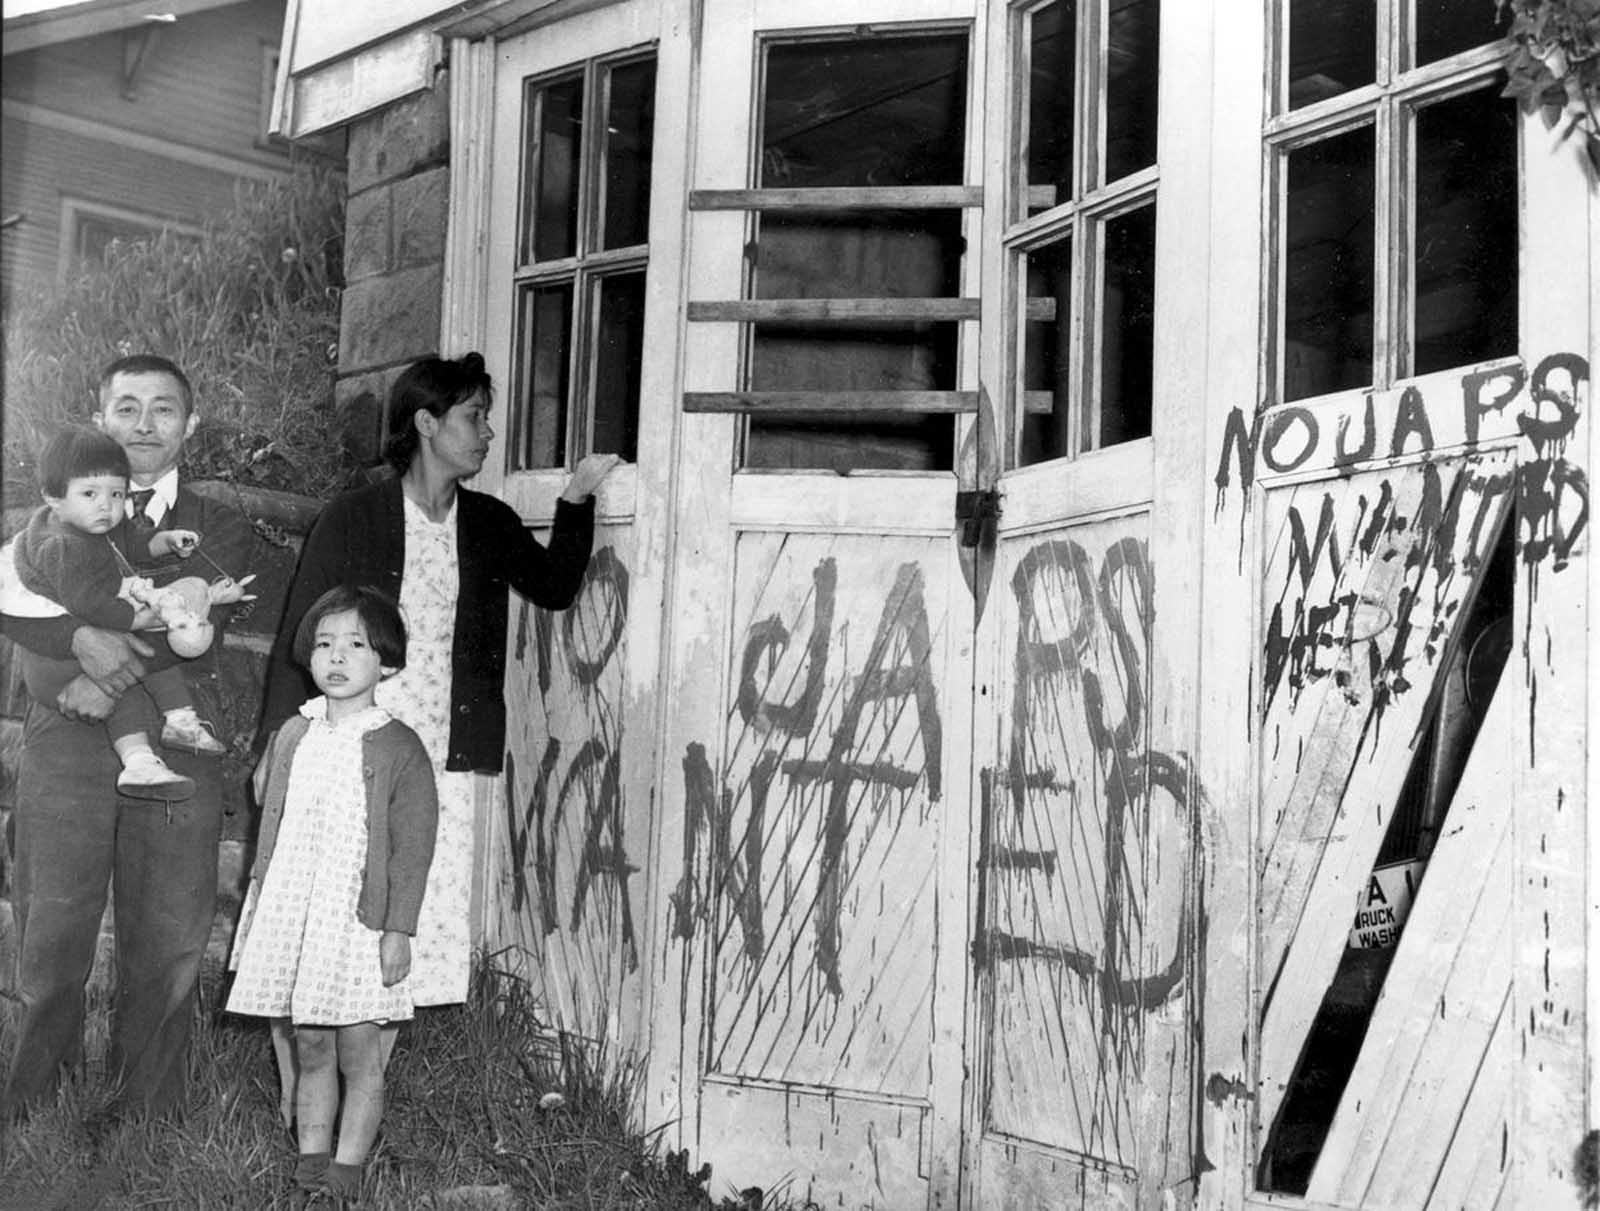 A Japanese family returning home from a relocation center camp in Hunt, Idaho, found their home and garage vandalized with anti-Japanese graffiti and broken windows in Seattle, Washington, on May 10, 1945.